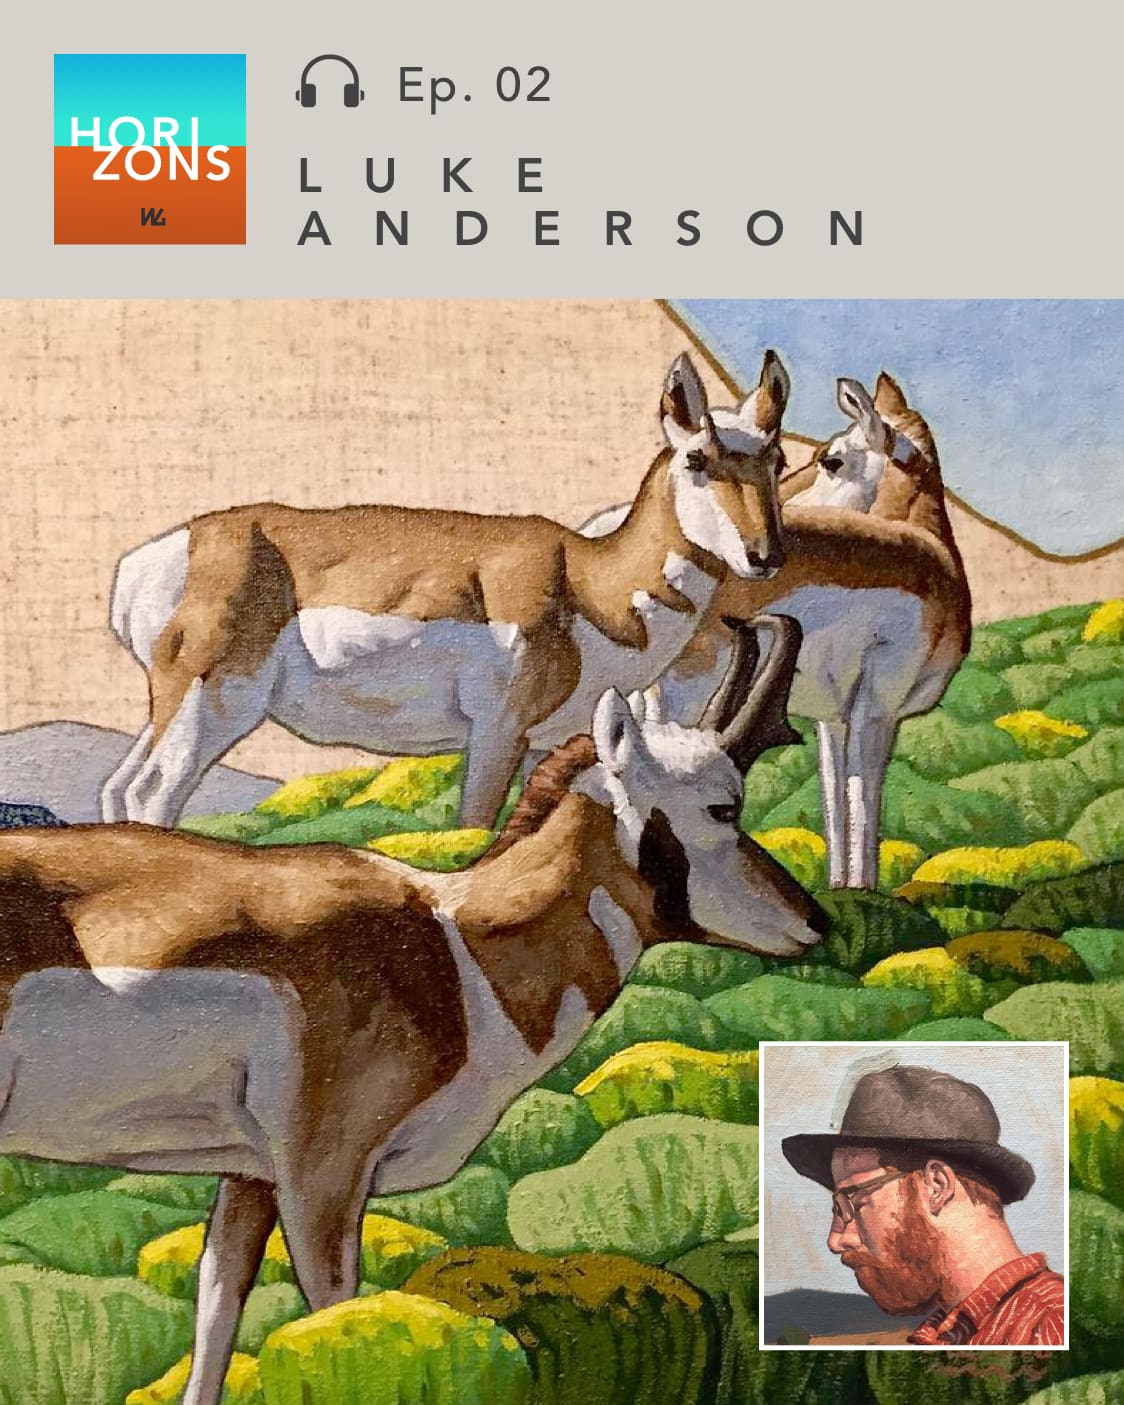 Luke Anderson on Horizons by Western Gallery